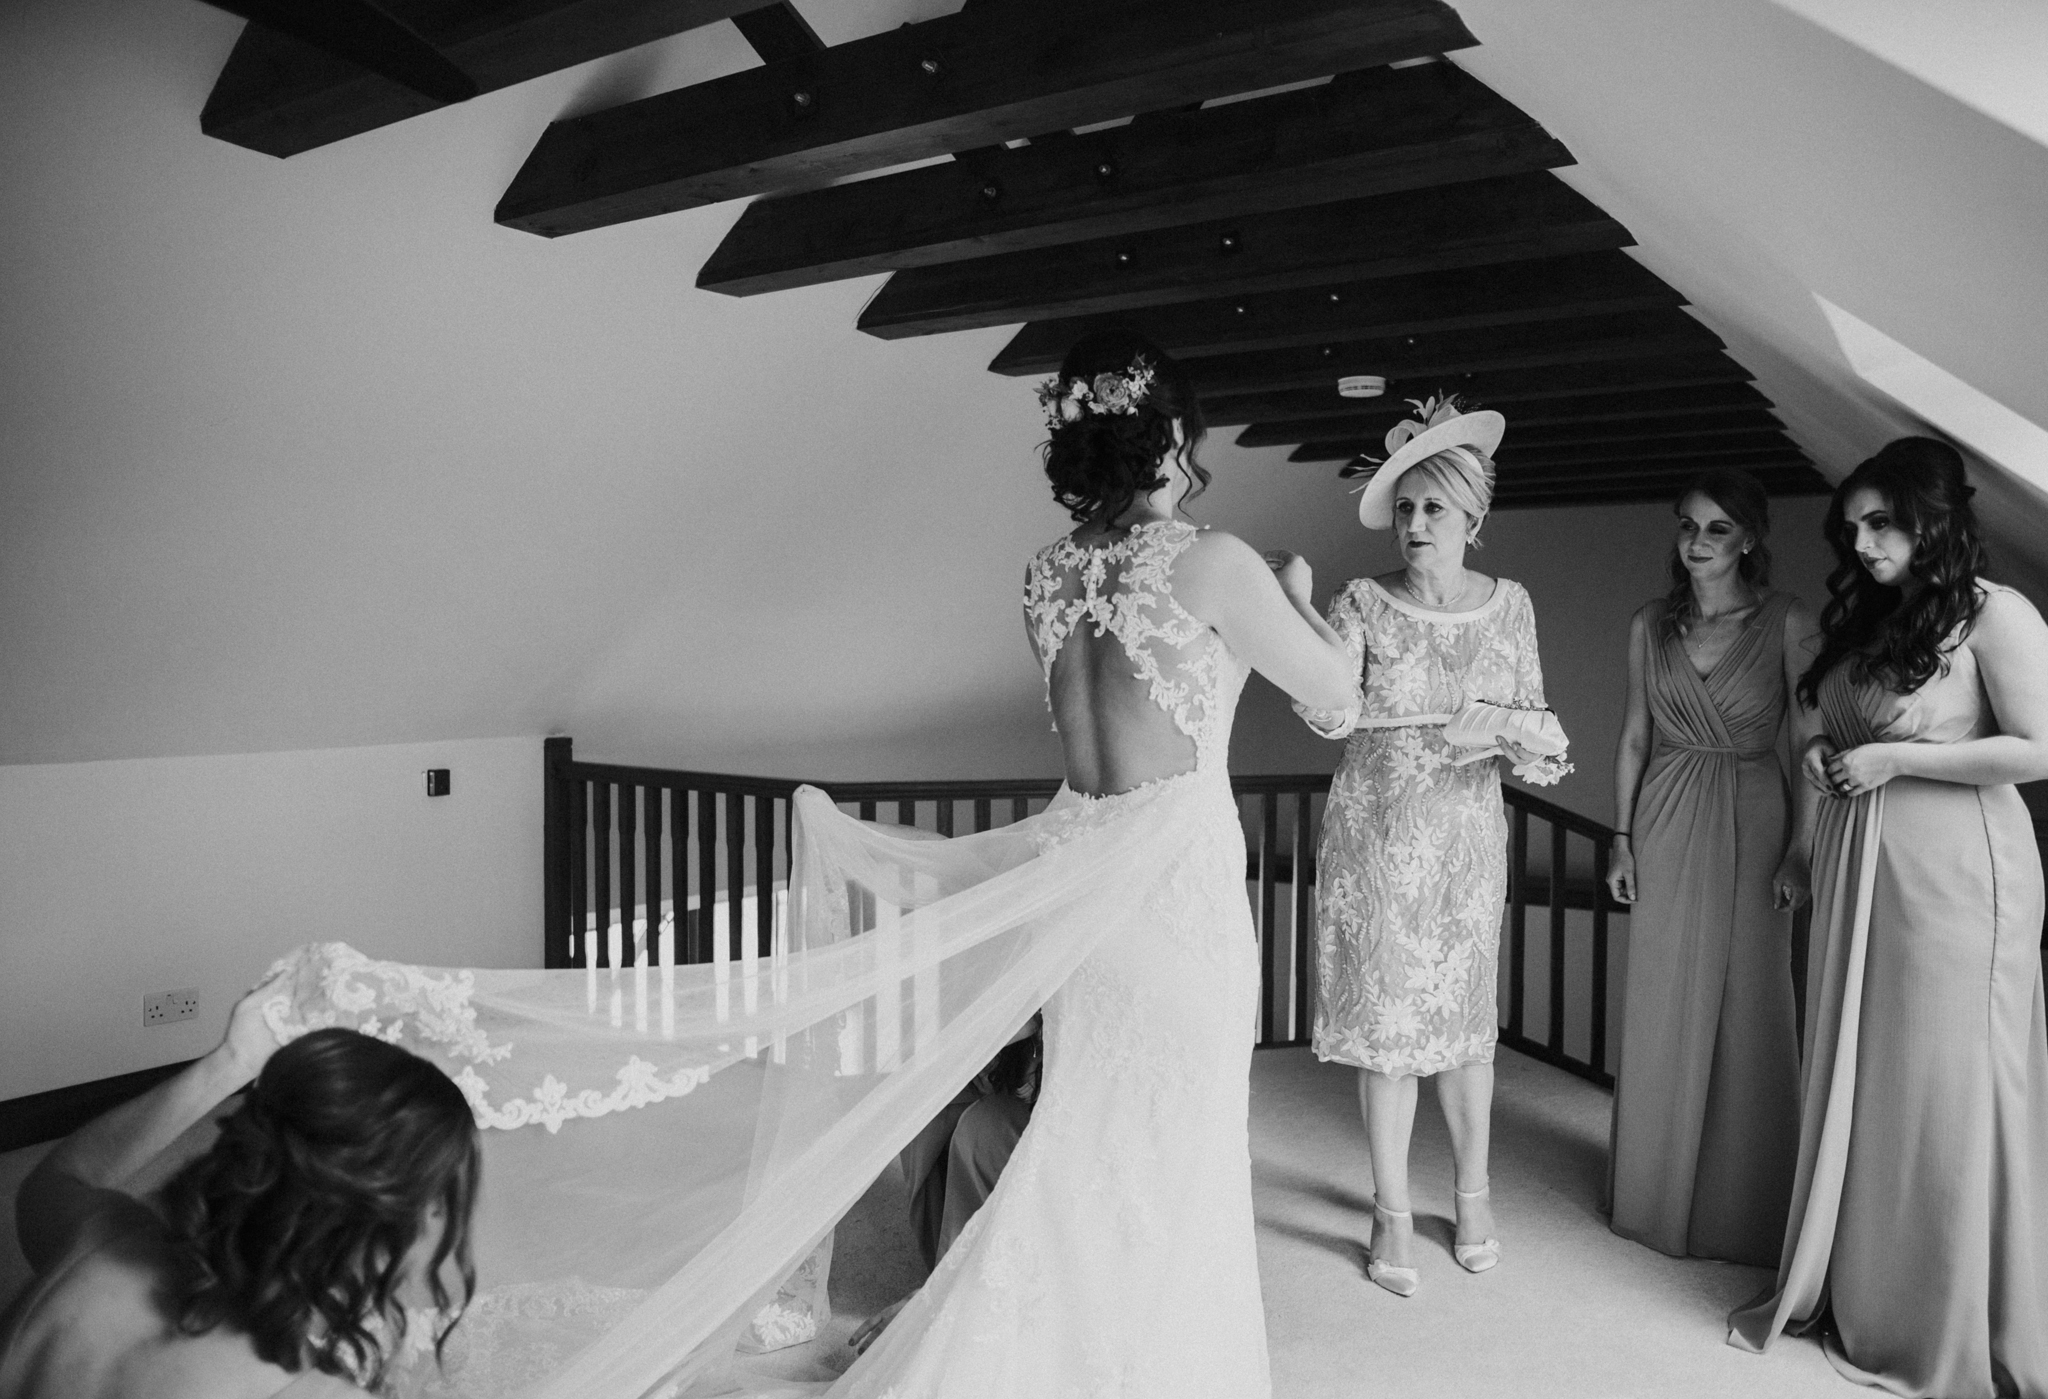 The bride with her mother and bridesmaids doing the last touches before became a wife